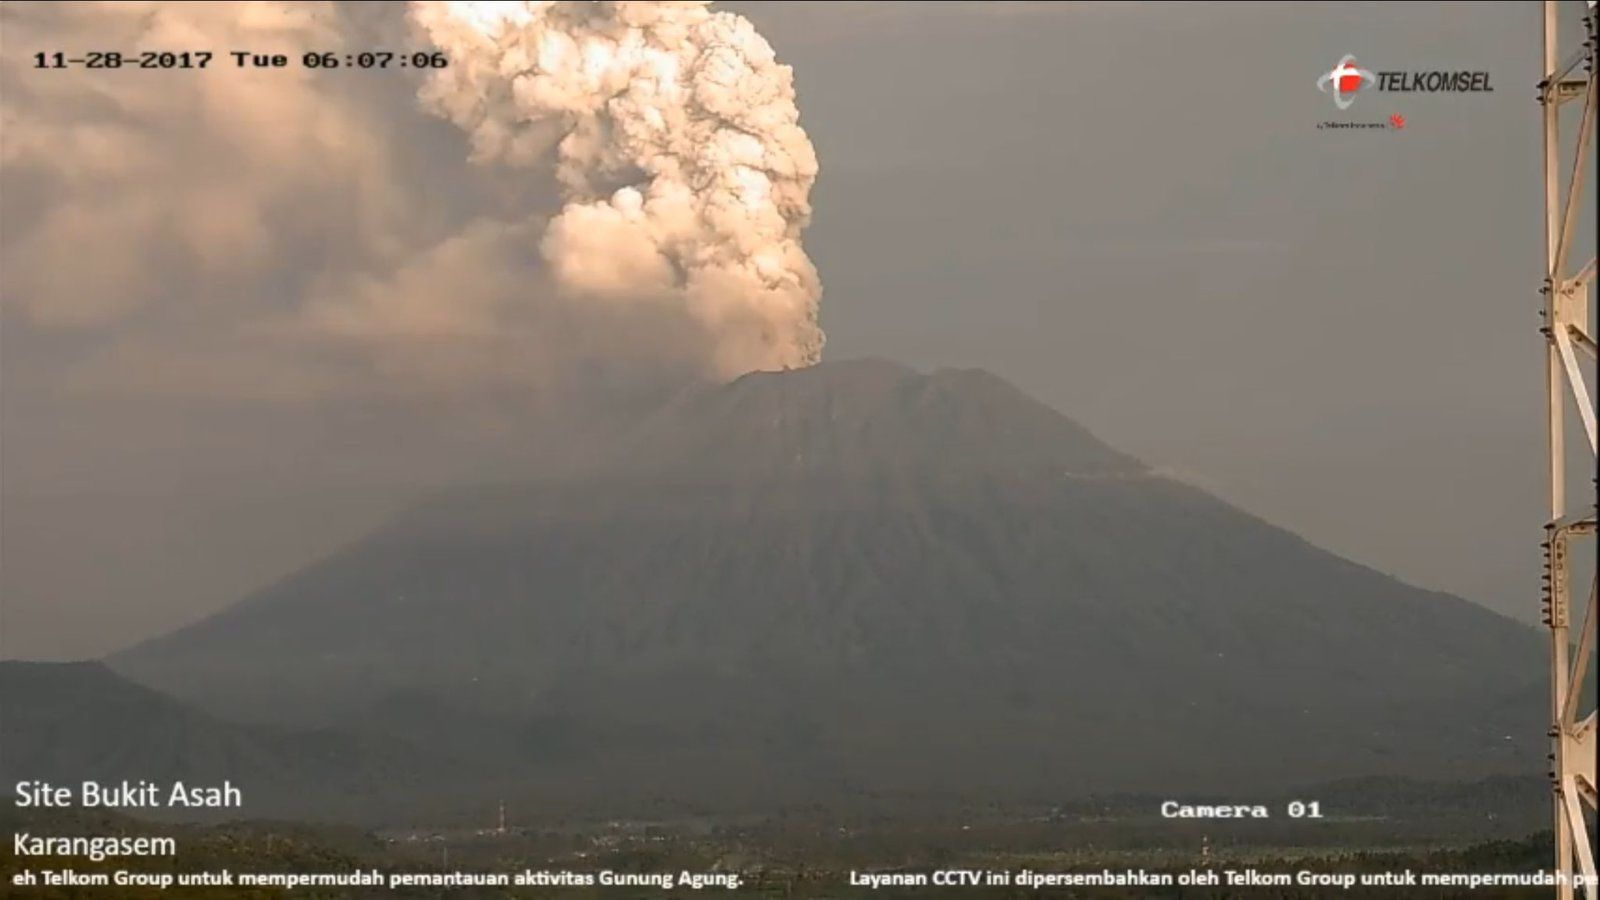 The Agung today 28.11.2017, respectively at 6:07, 8:00, and 11:42 loc. - Telkomsel webcams & PVMBG